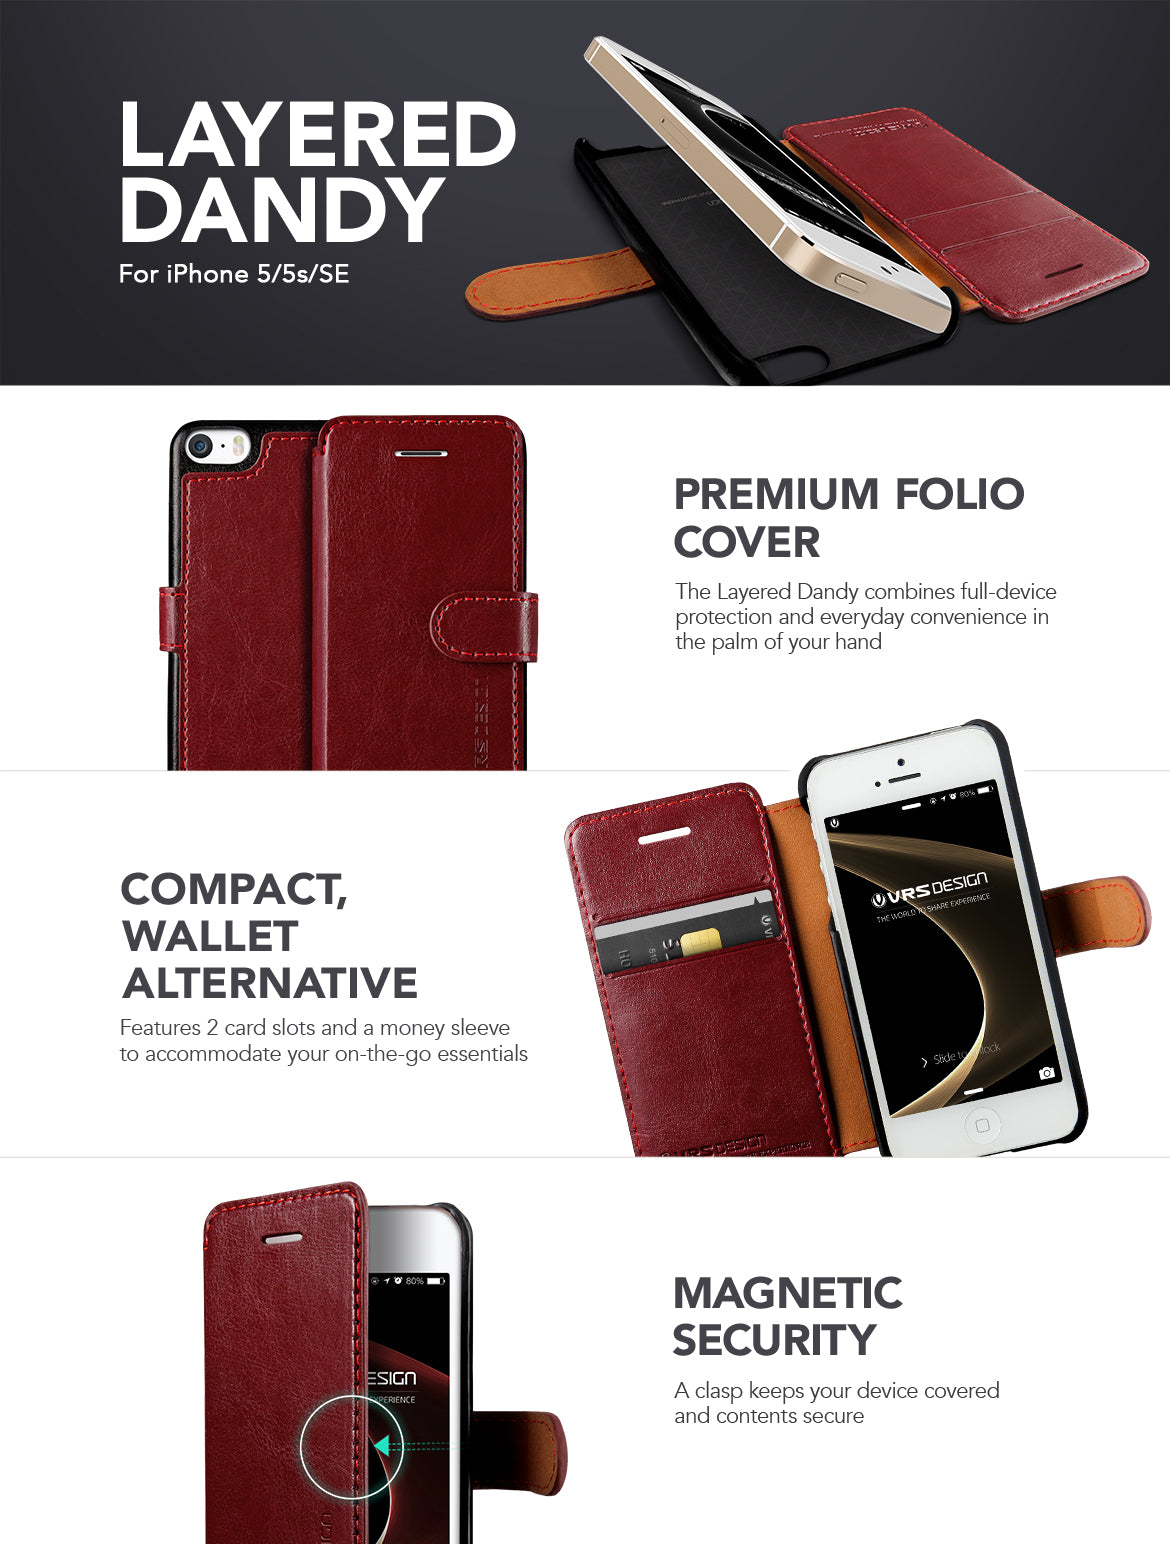 iPhone 5 / 5s / SE_Layered Dandy